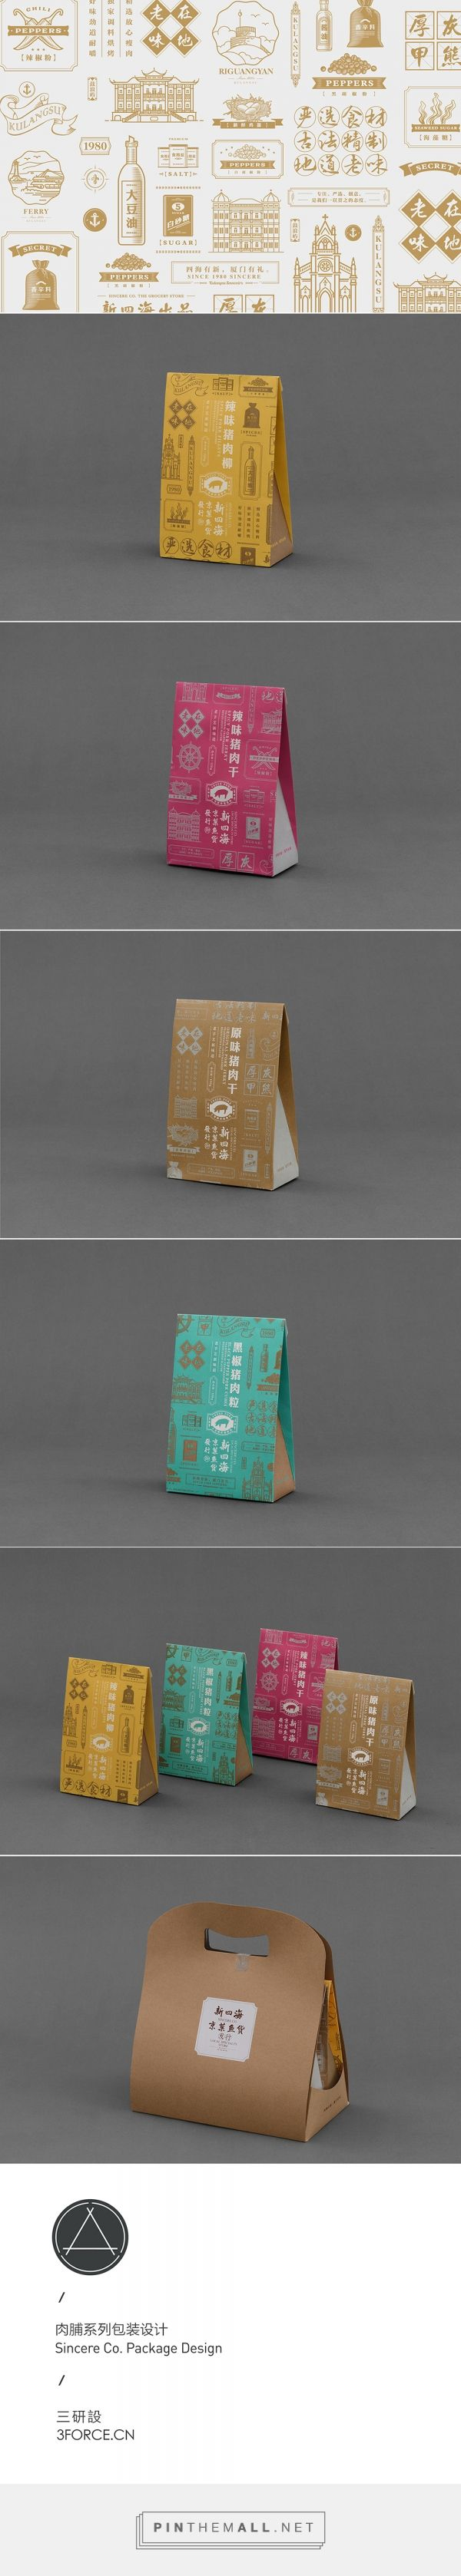 Pork Products Packaging Design by 3Force 三研設 Xiamen, China 新四海肉脯系列包裝 on Behance…